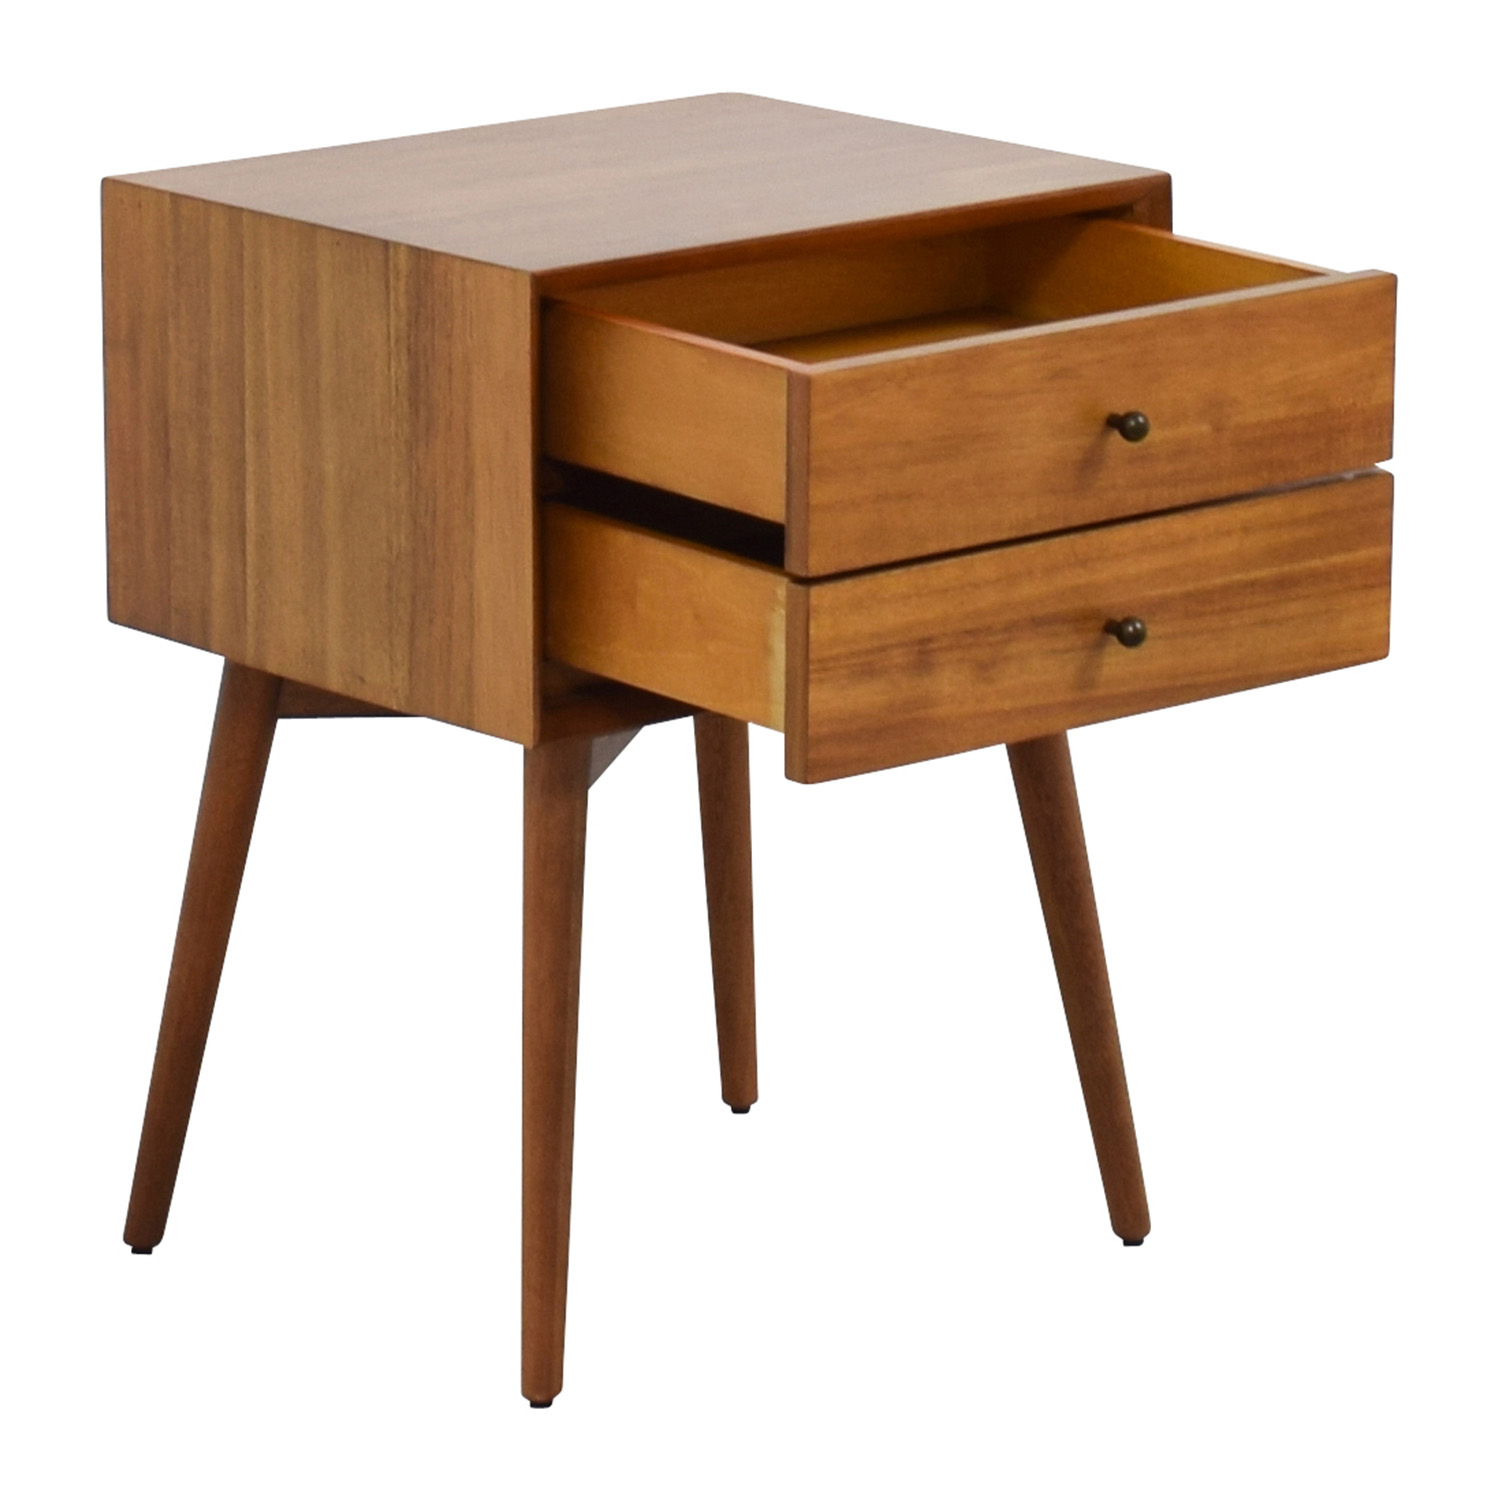 49 Off West Elm West Elm Mid Century Nightstand Tables